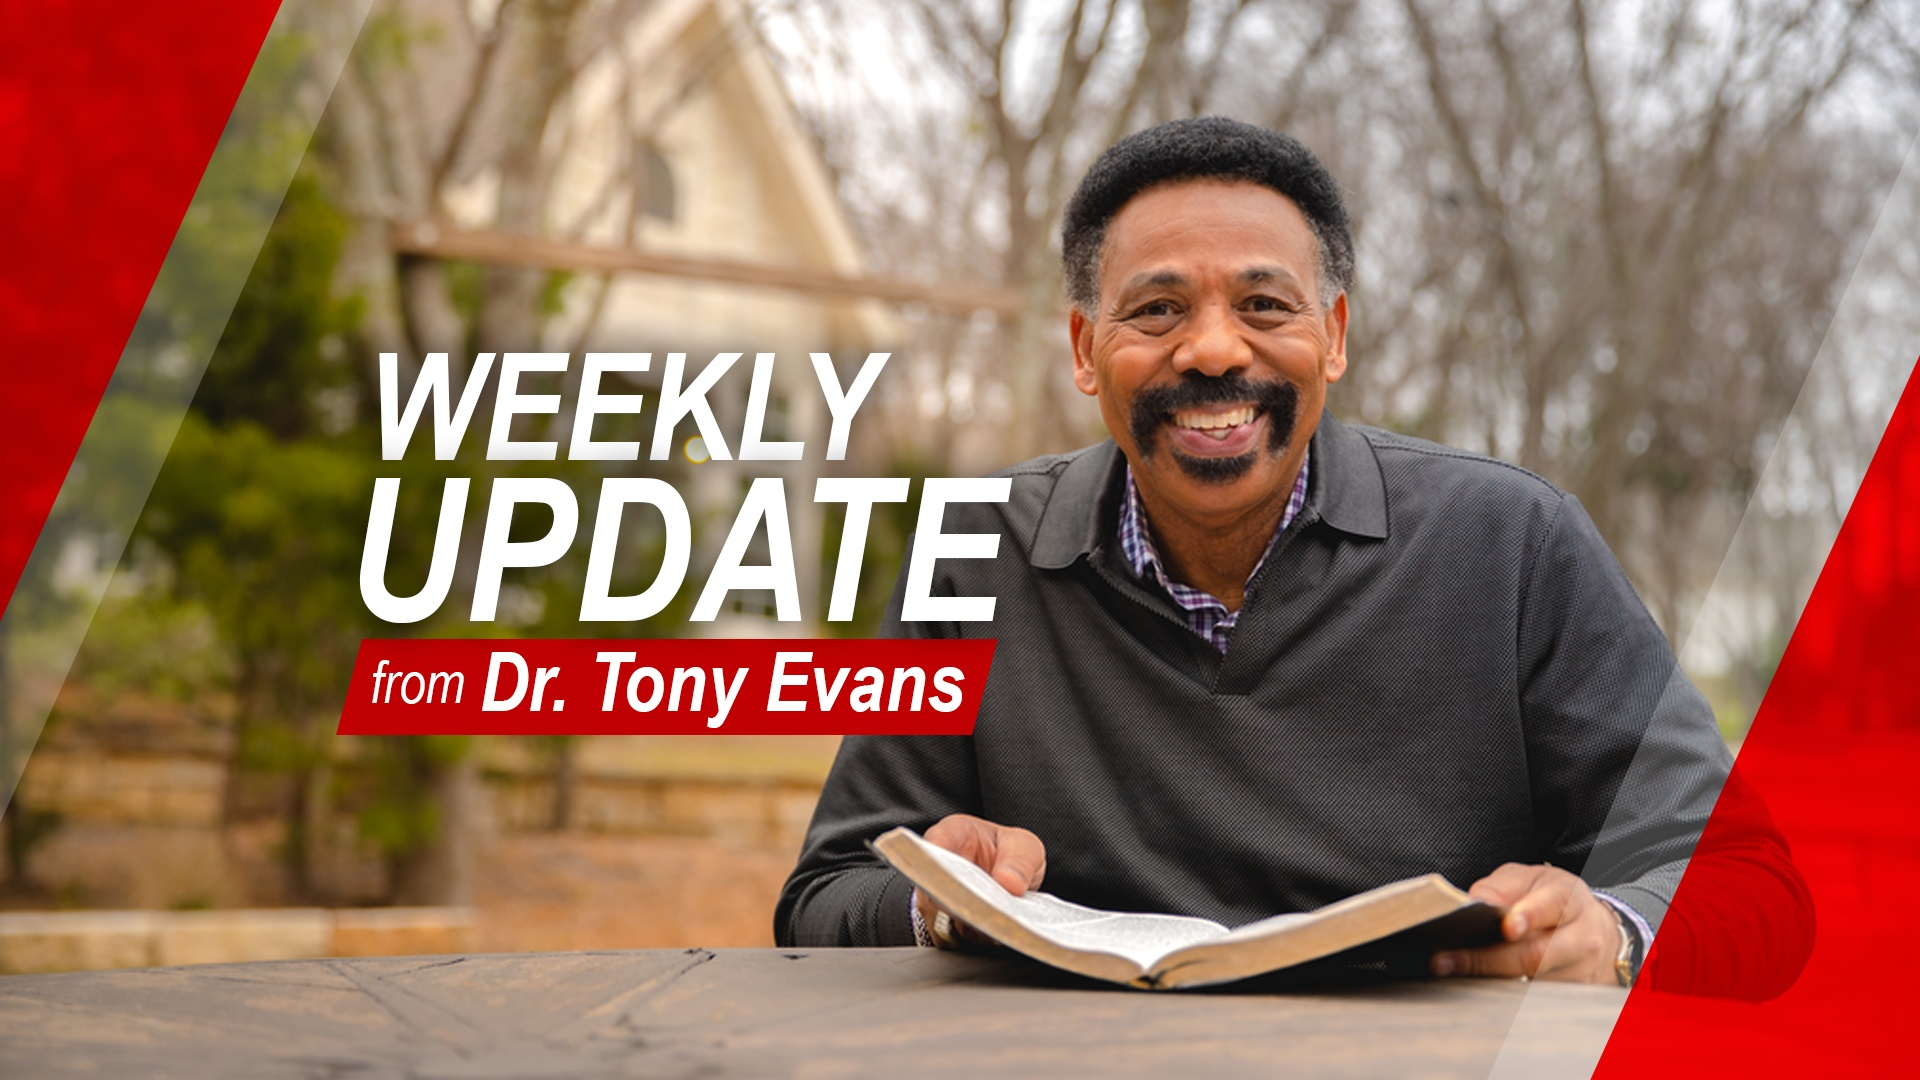 Dr. Tony Evans sitting holding an open Bible - Weekly Update